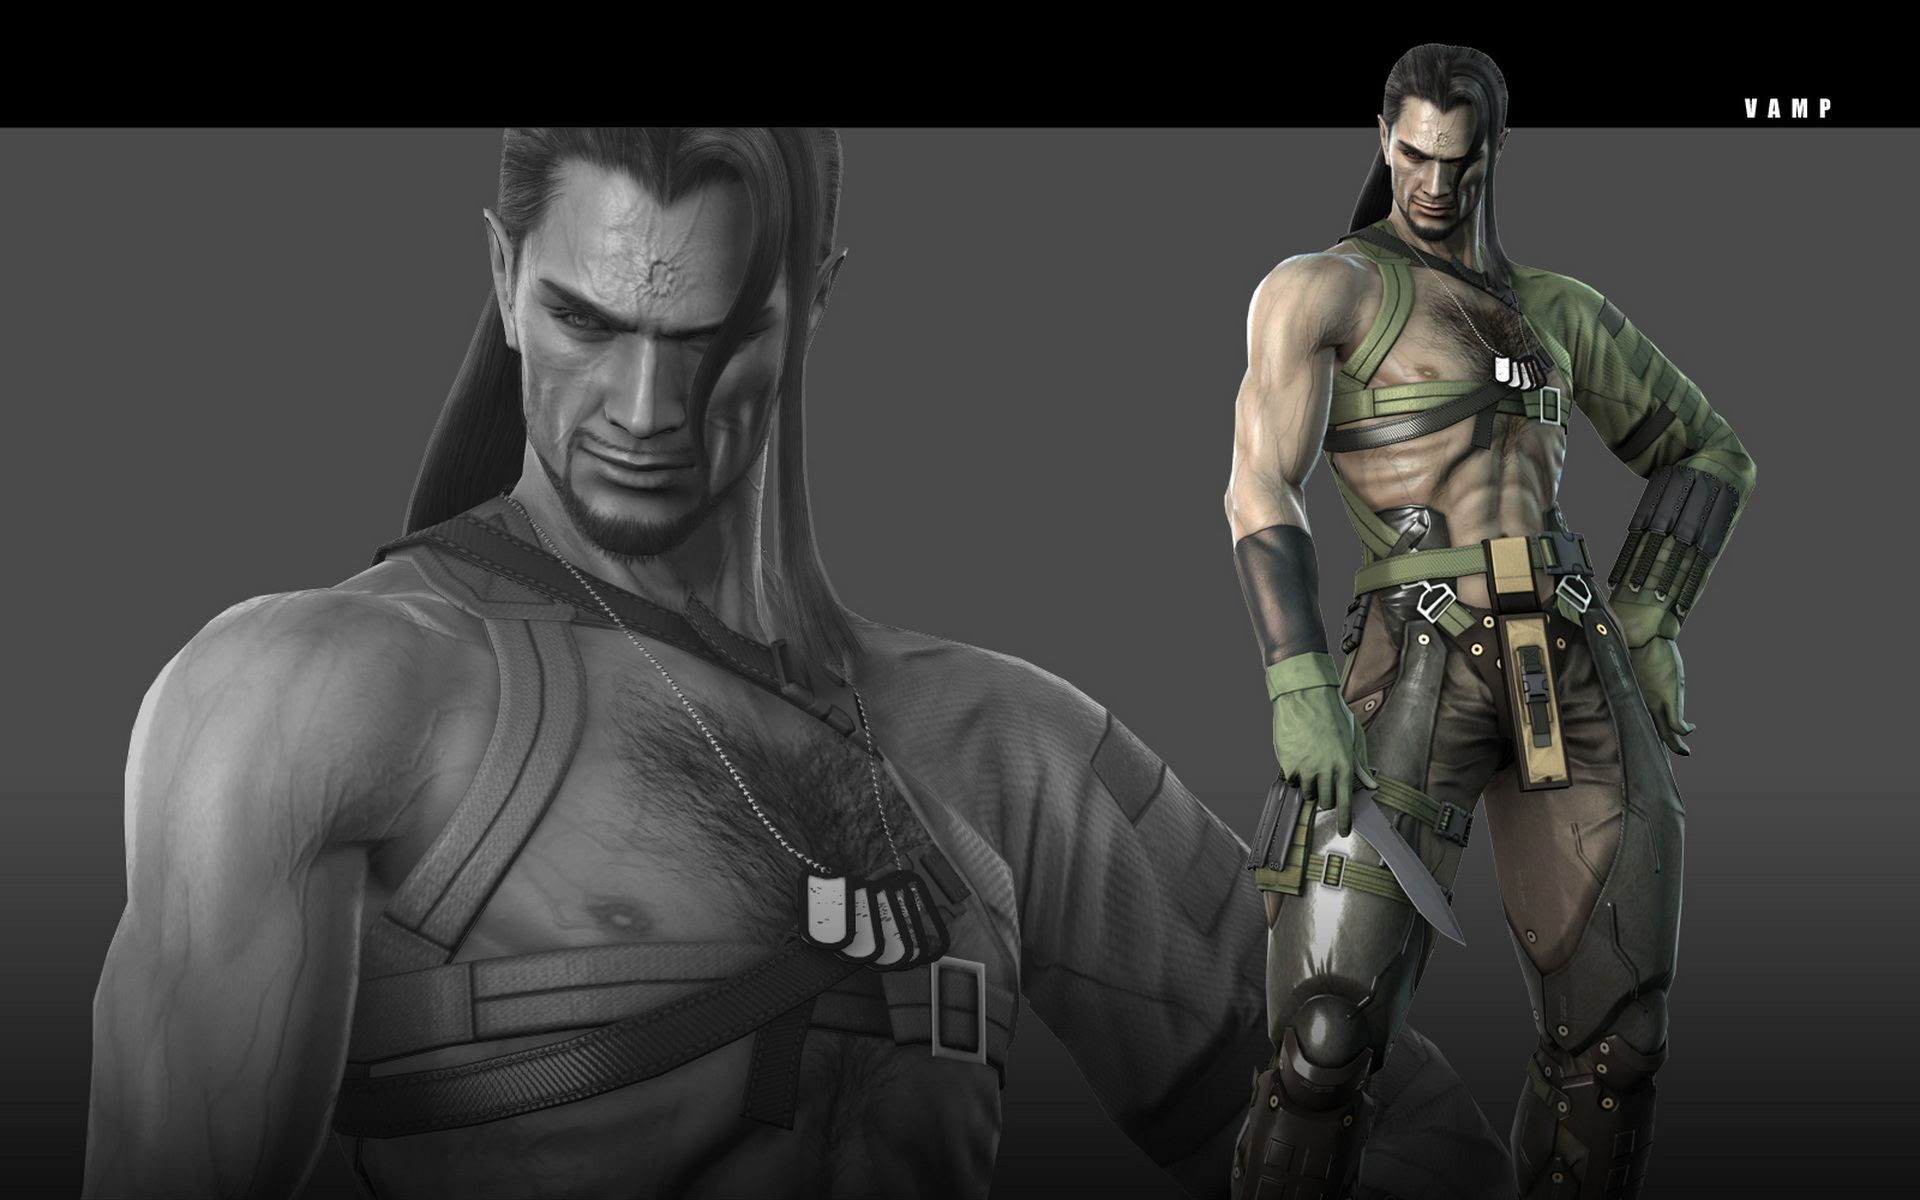 Metal Gear Solid 4 Vamp Wallpapers 1920x1200 178414